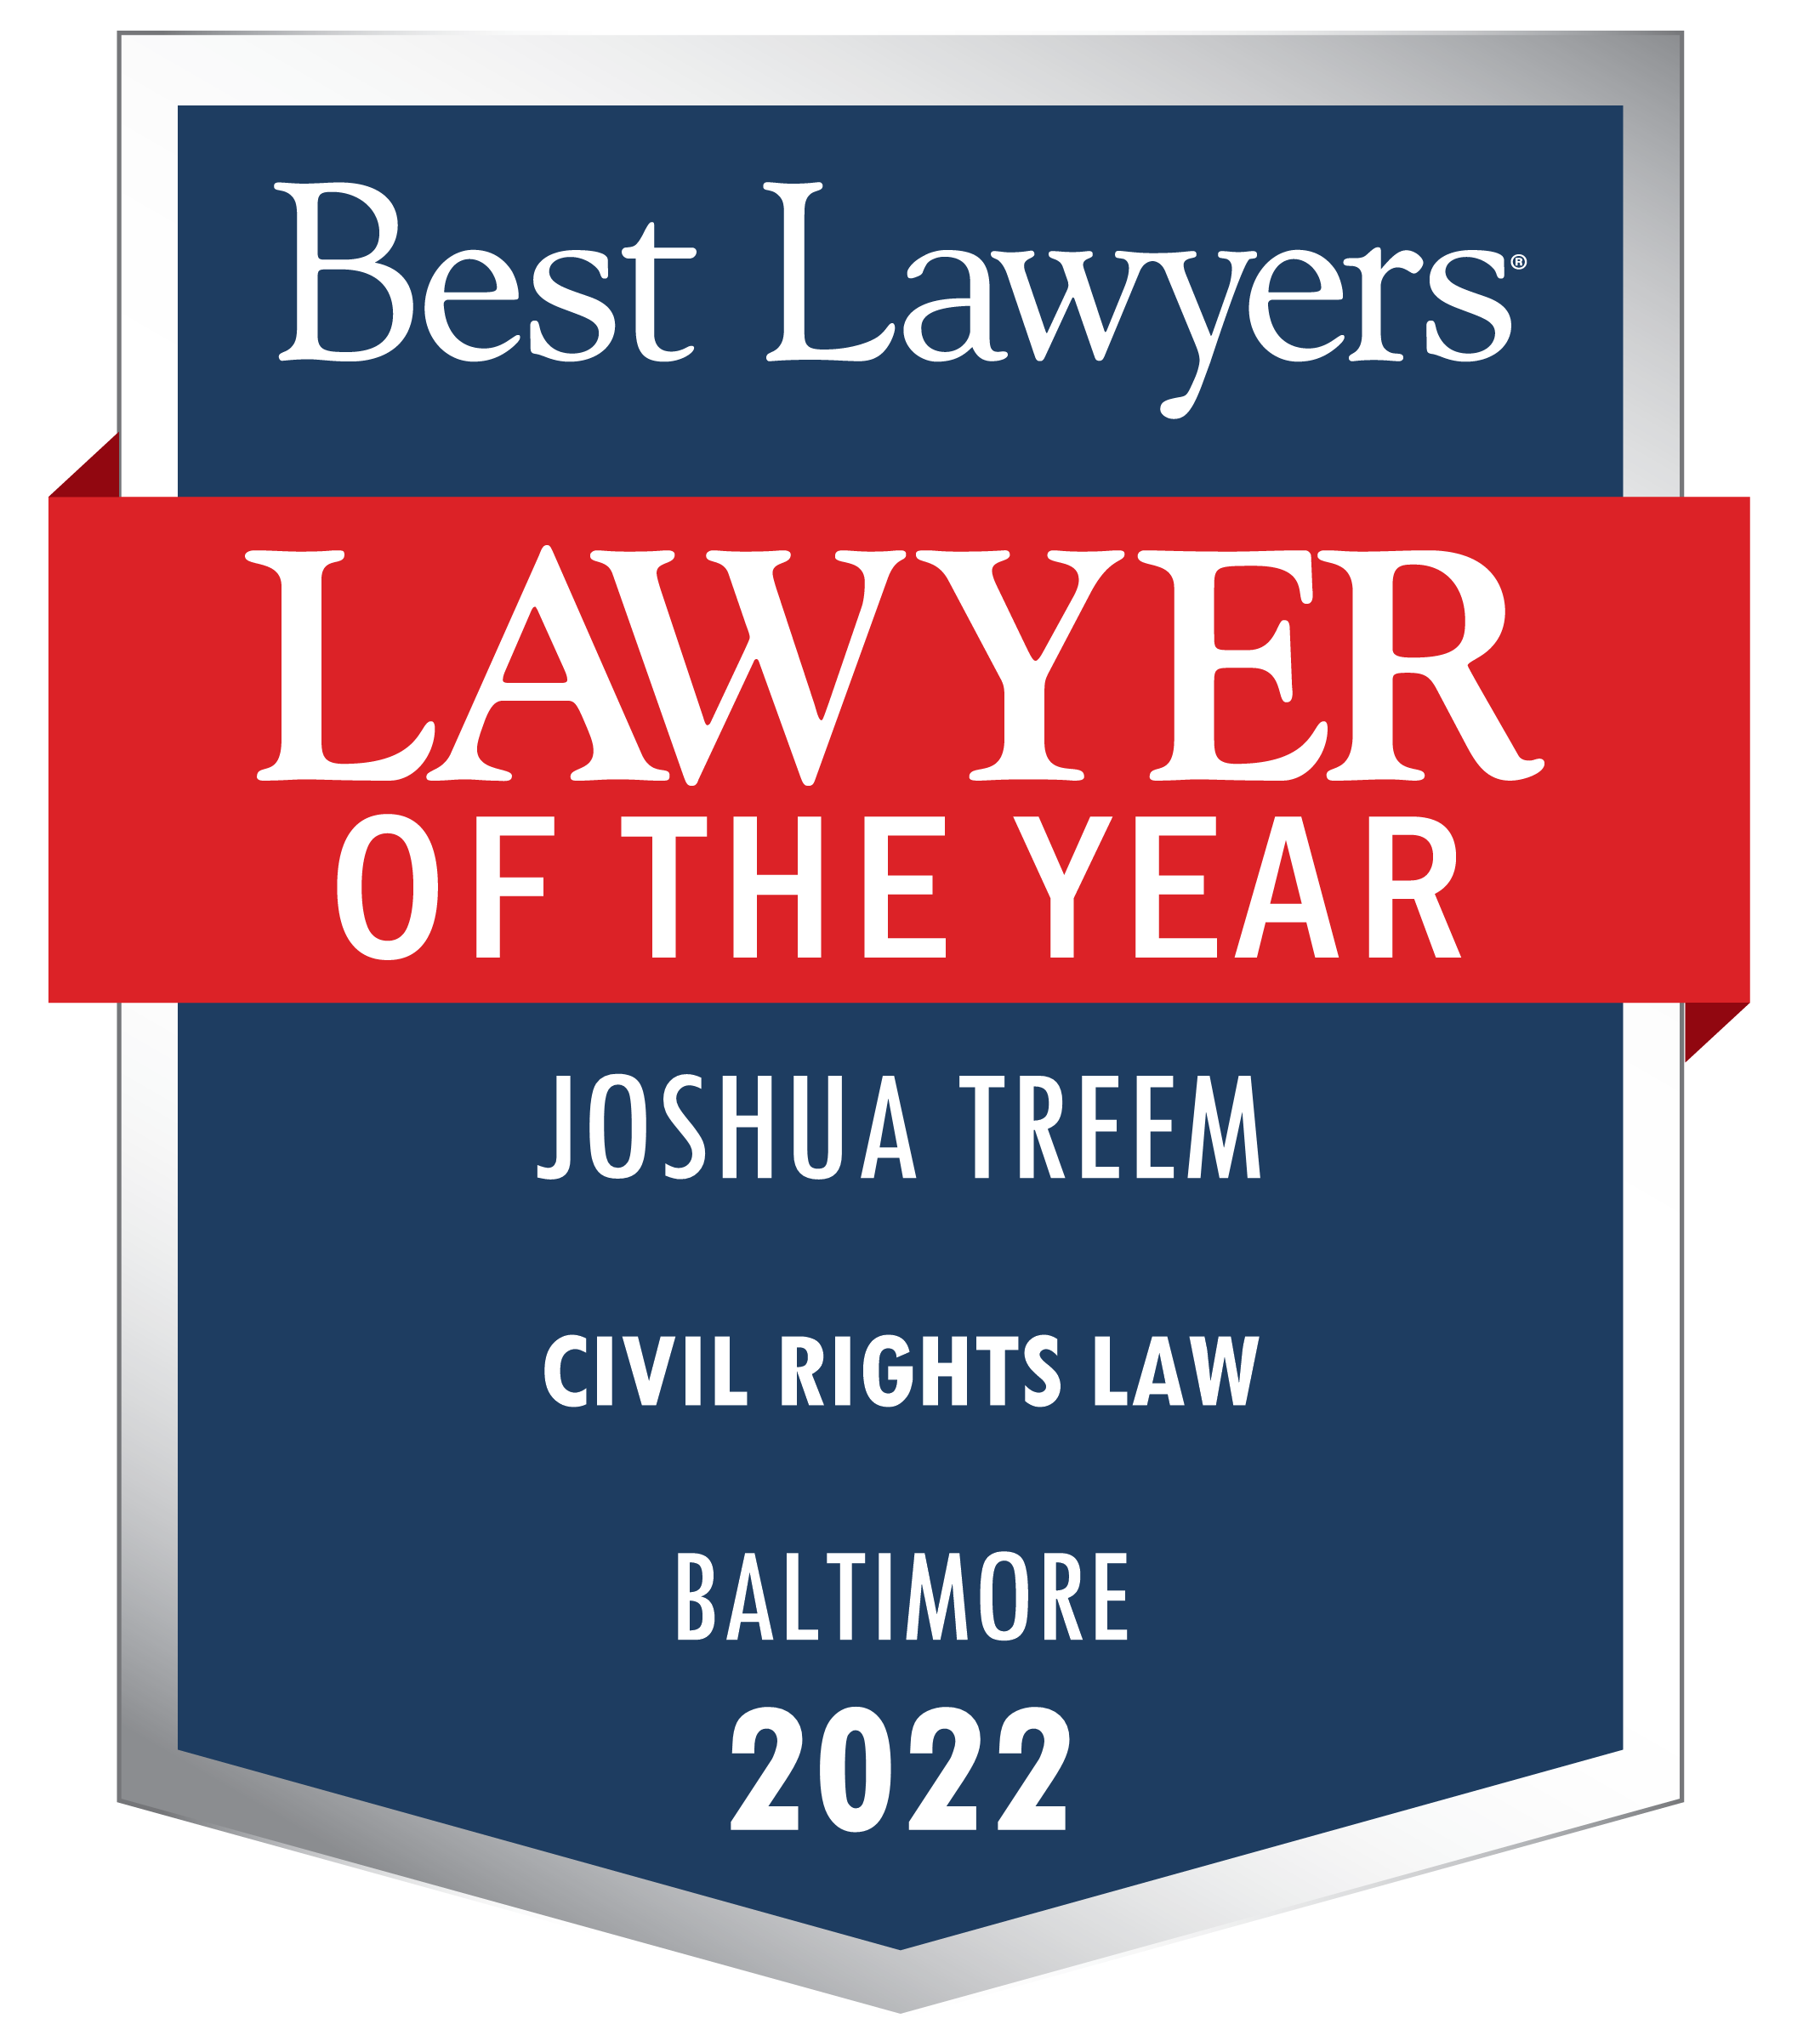 Best Lawyers Lawyer of the Year, Joshua Treem, Civil Rights Law, Baltimore, 2022